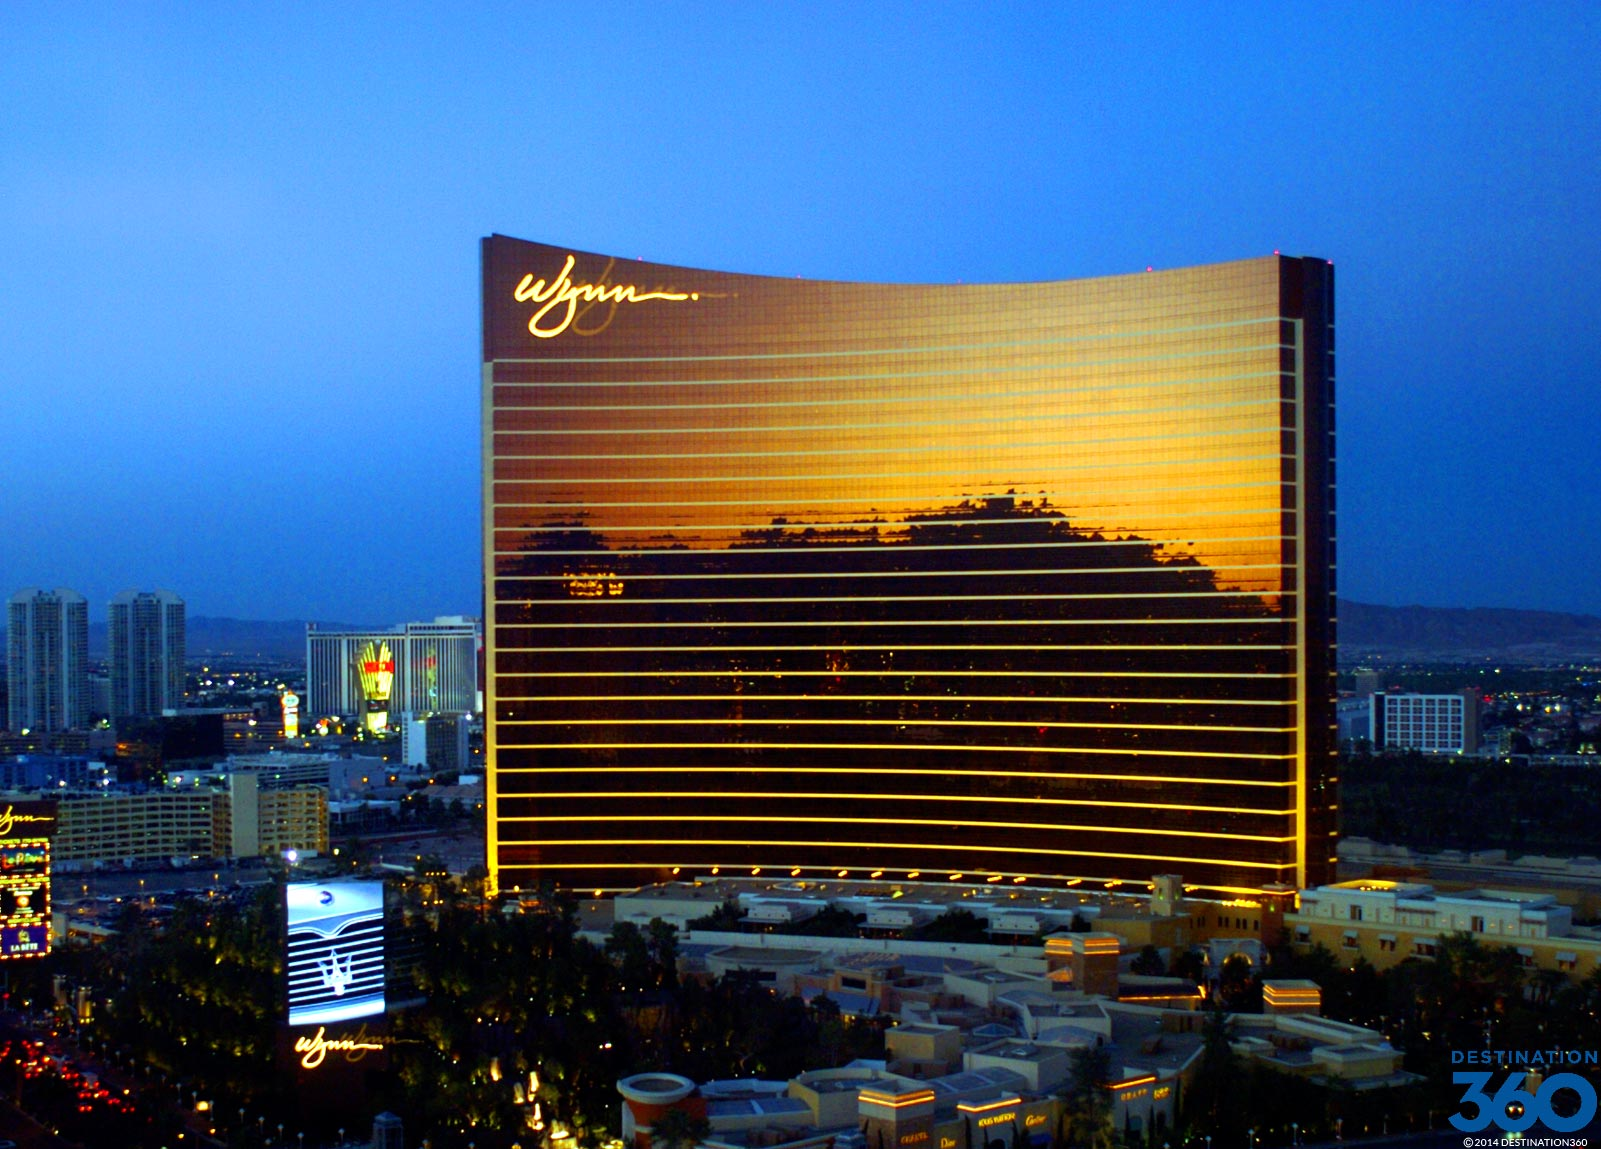 The Wynn Vegas